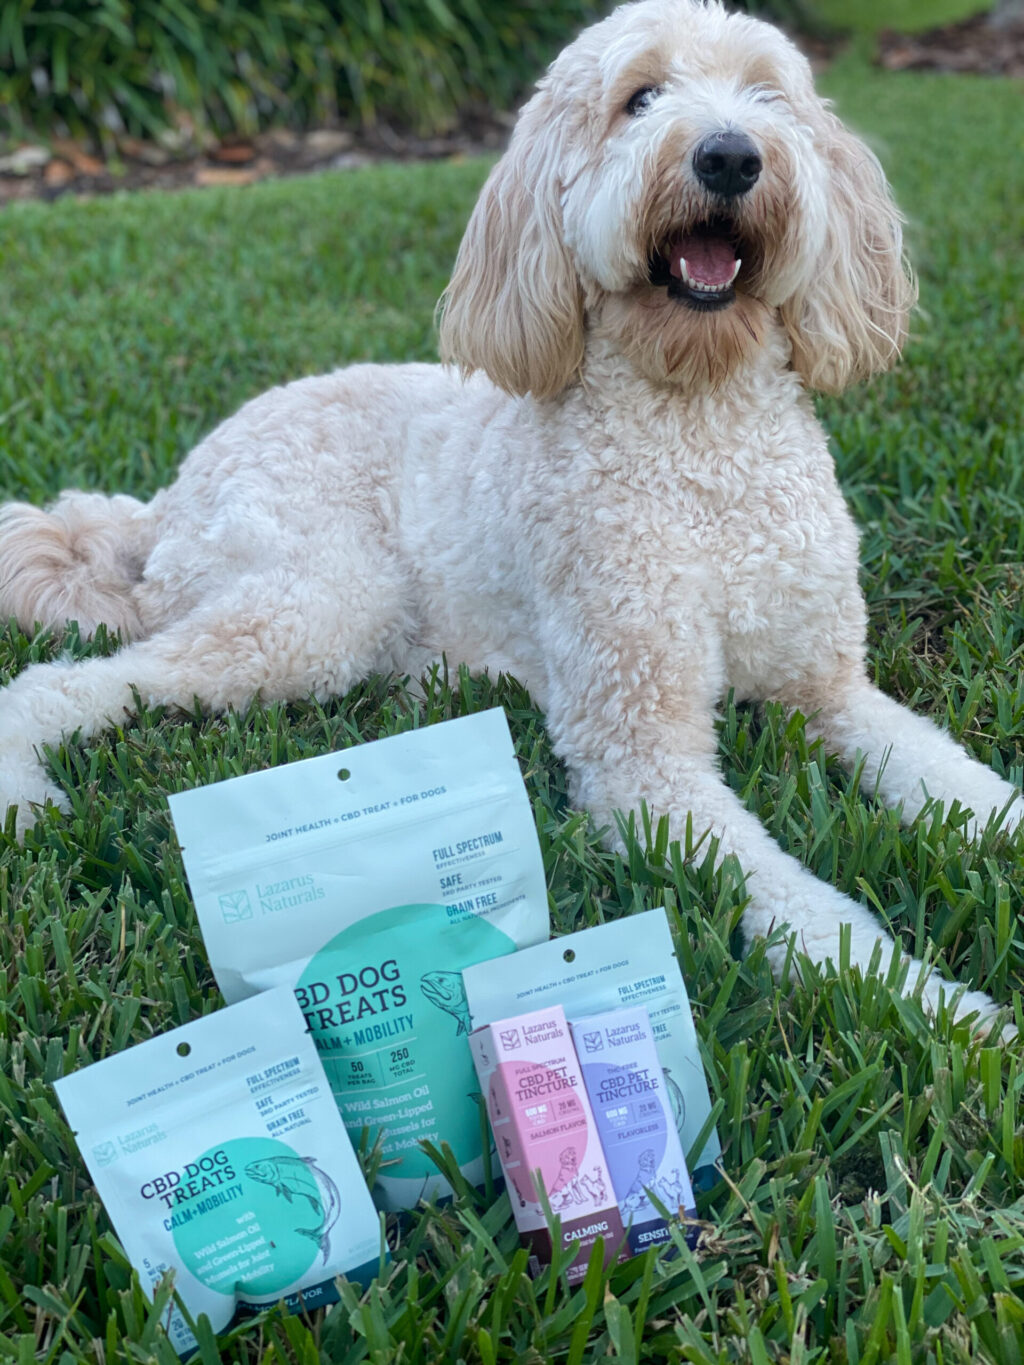 white goldendoodle sitting in grass next to cbd products for dogs